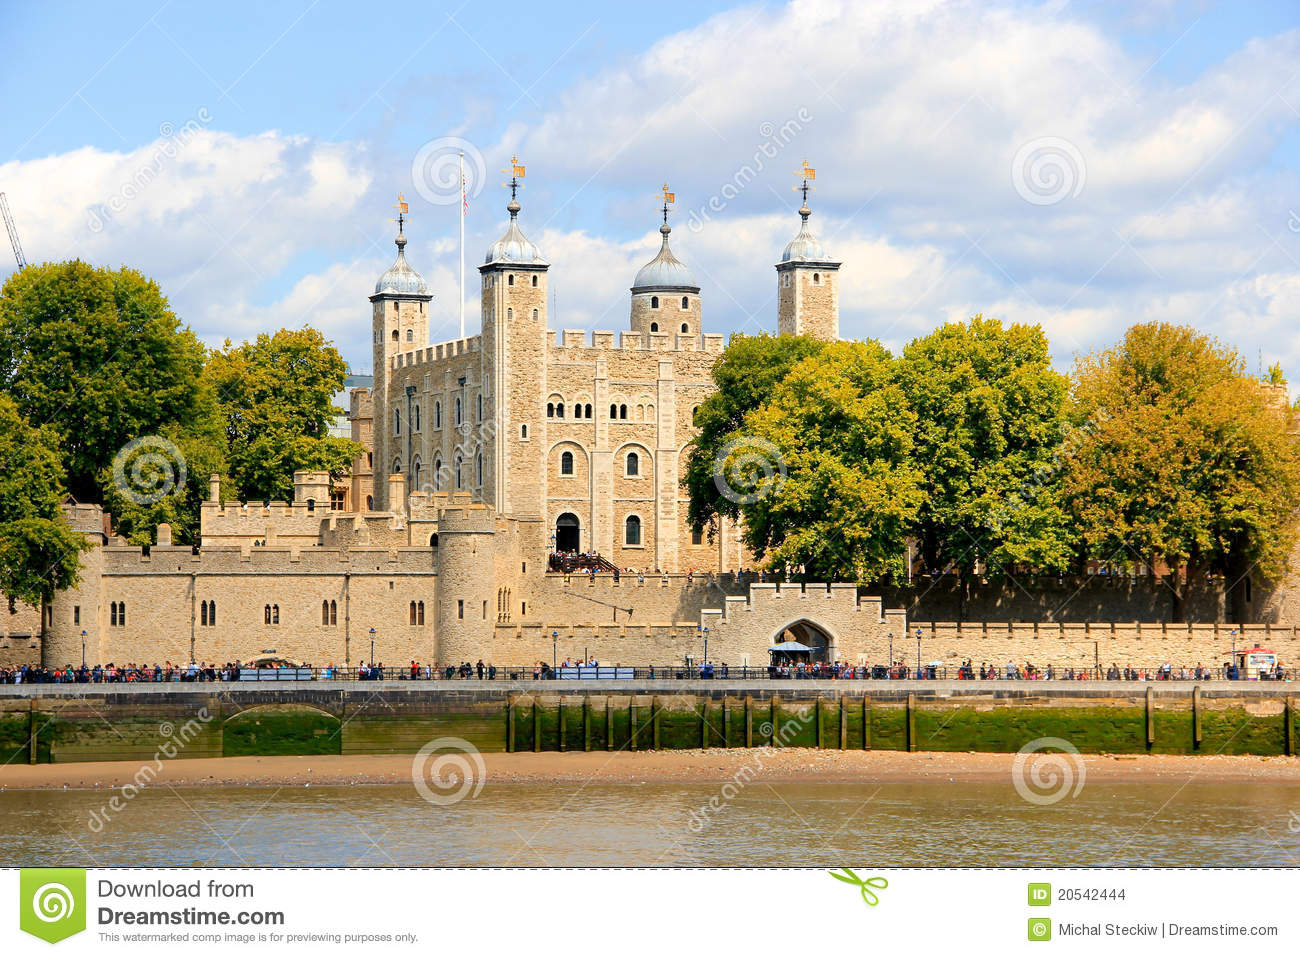 Tower Castle in London